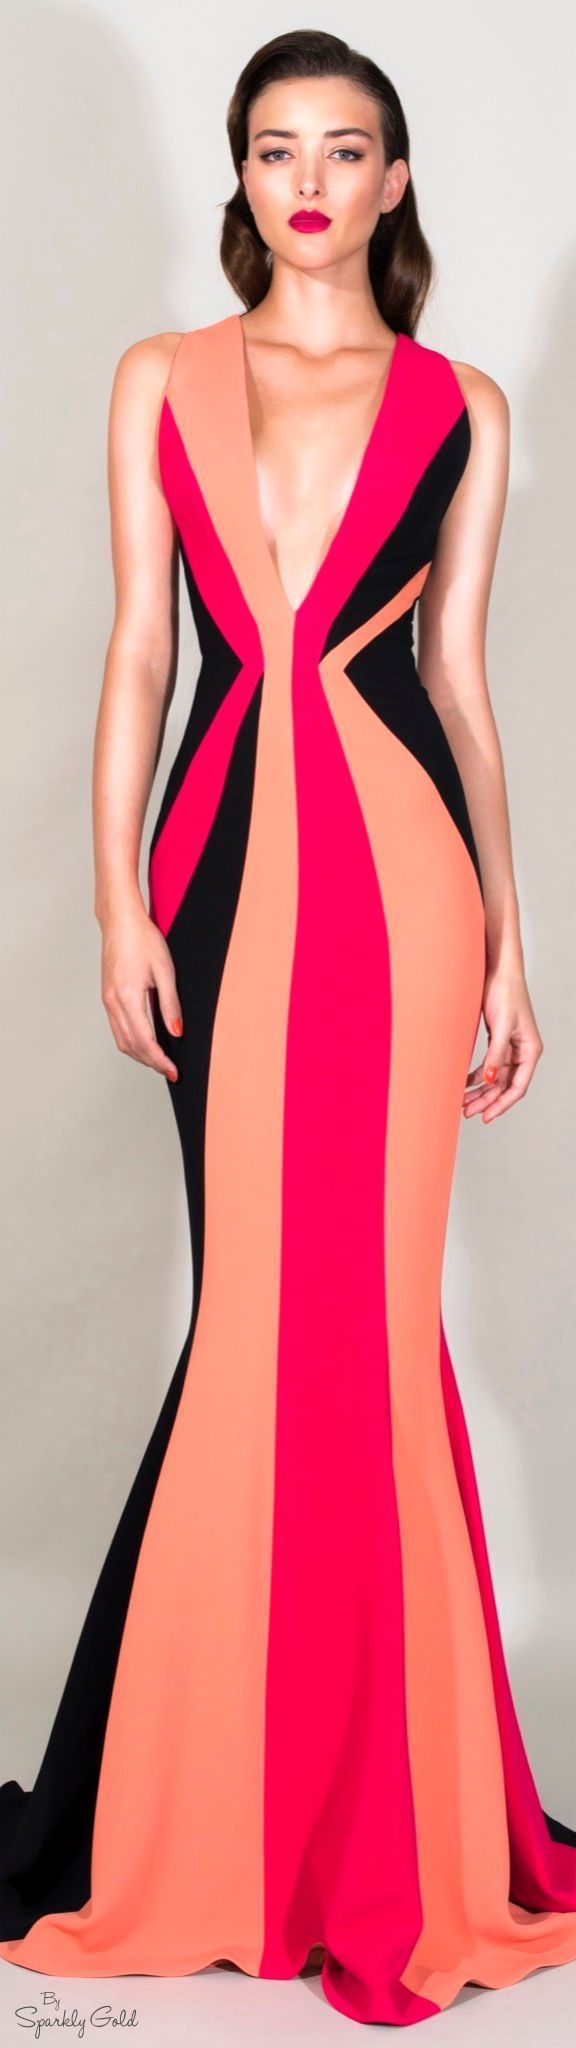 best classy u elegant style images on pinterest evening gowns